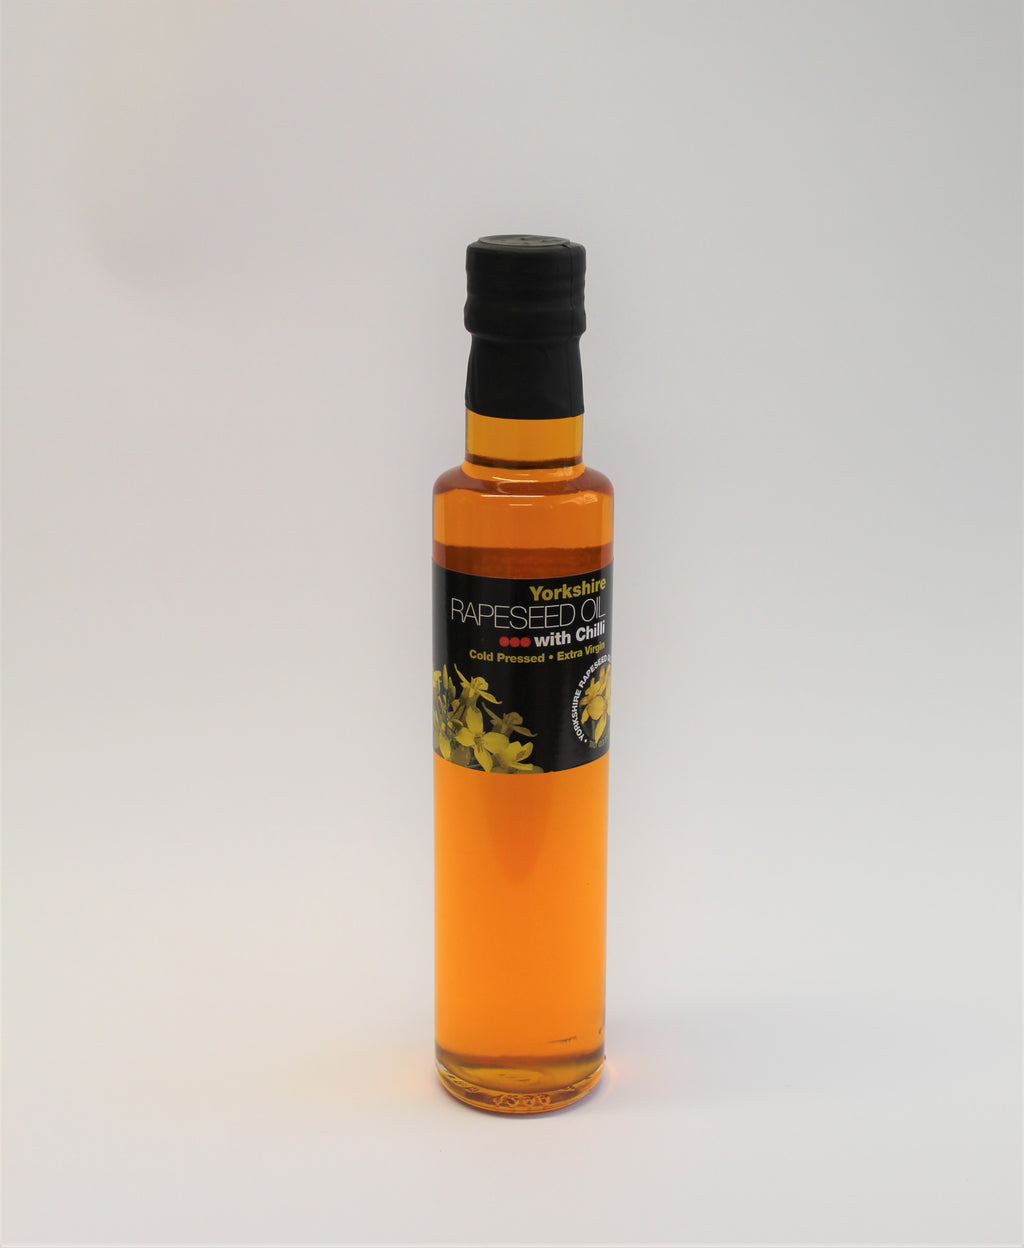 Yorkshire Rapeseed Oil with Chilli